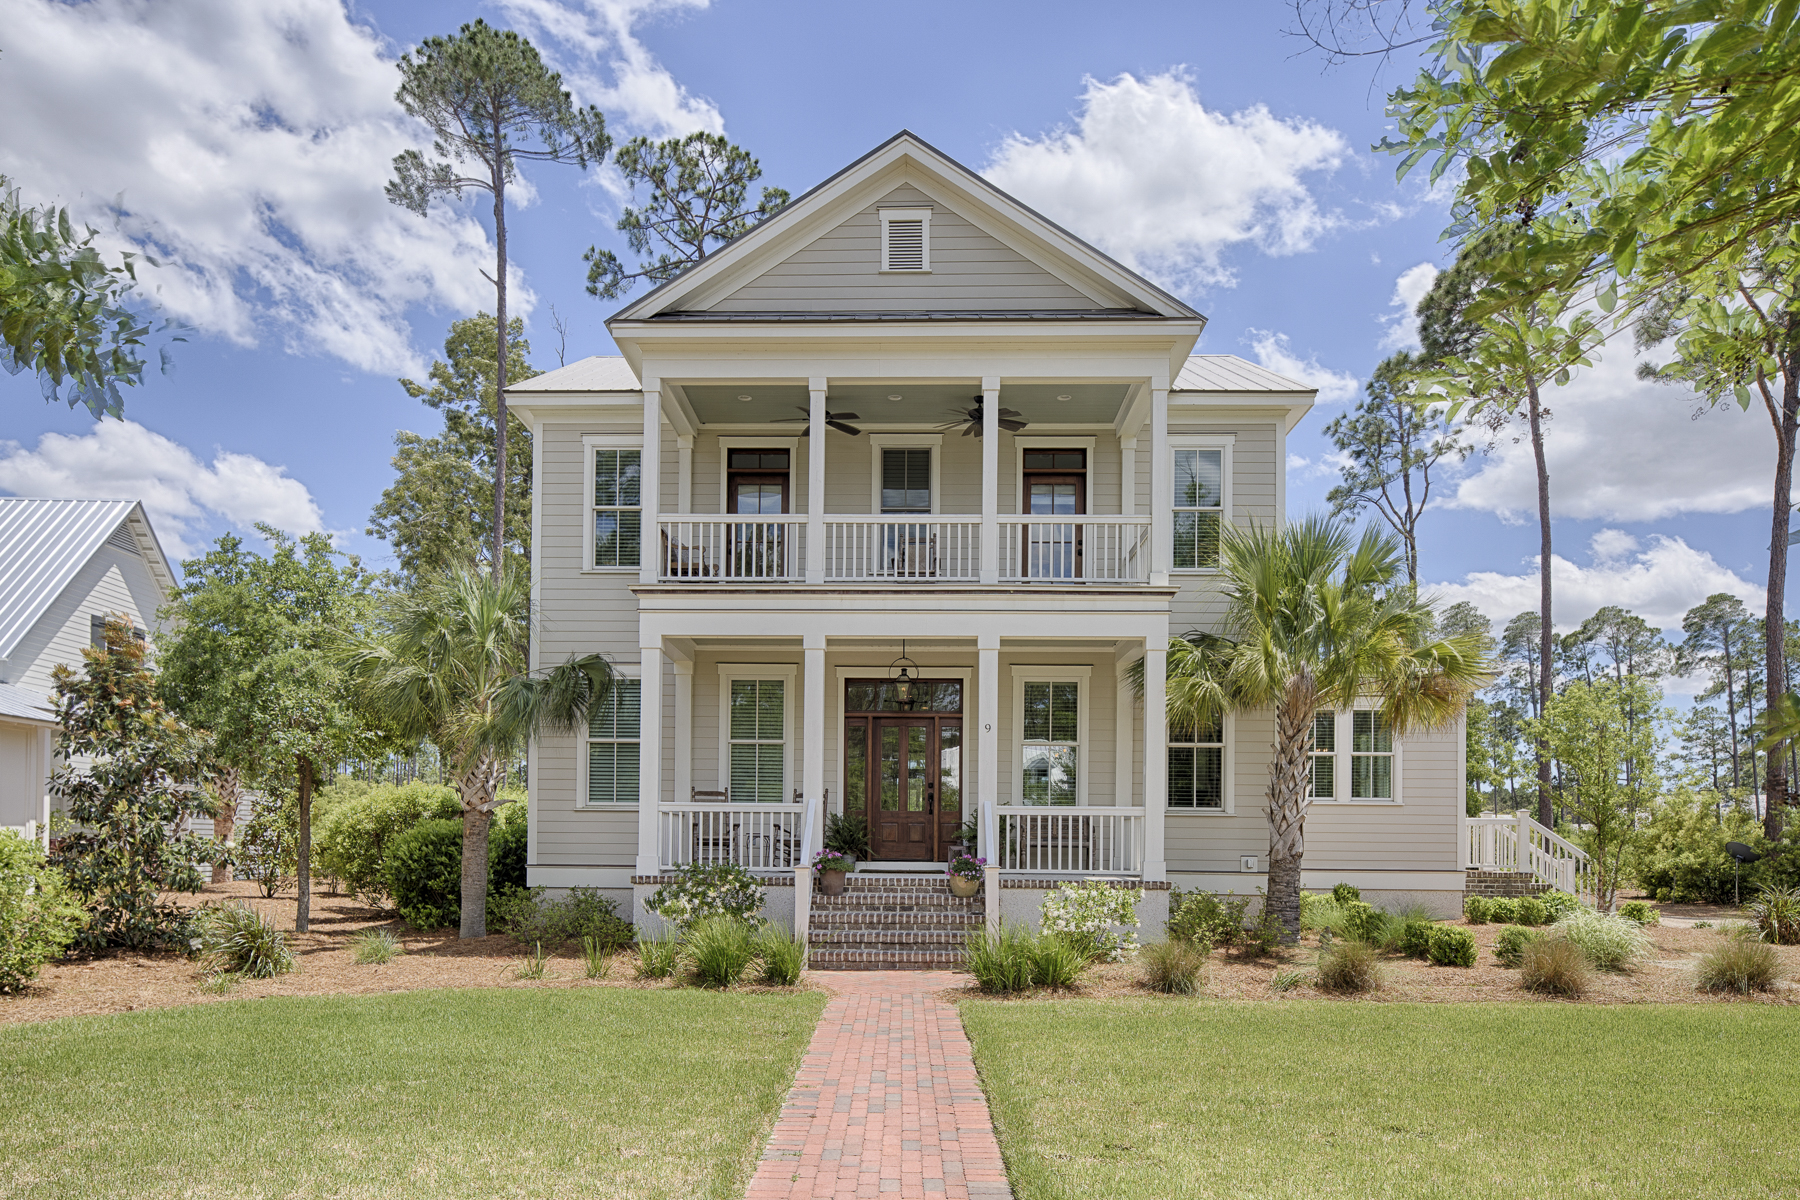 Single Family Home for Sale at 9 Hunting Lodge Road Palmetto Bluff, Bluffton, South Carolina, 29910 United States